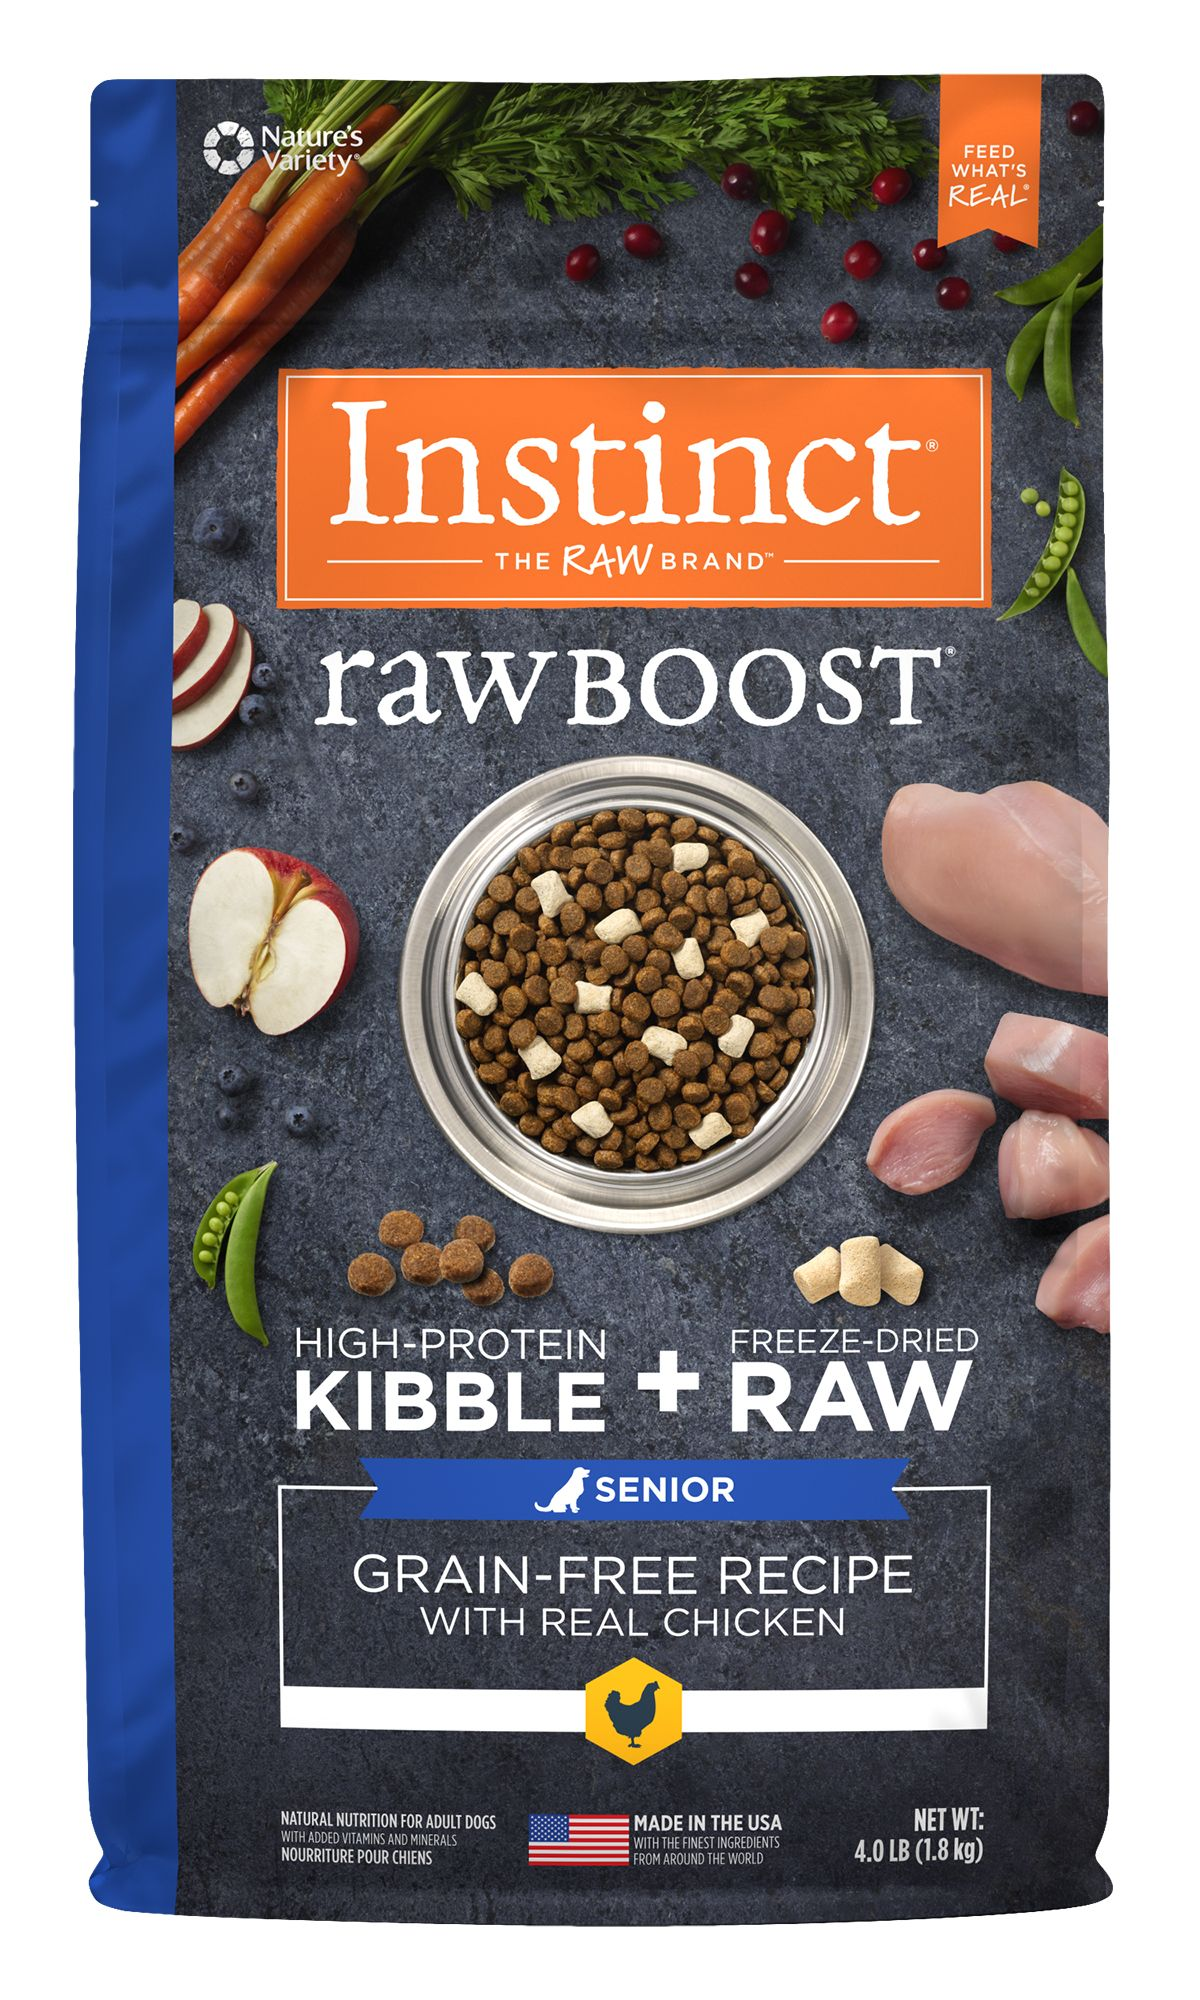 Raw Boost Grain-Free Recipe with Real Chicken for Senior Dogs